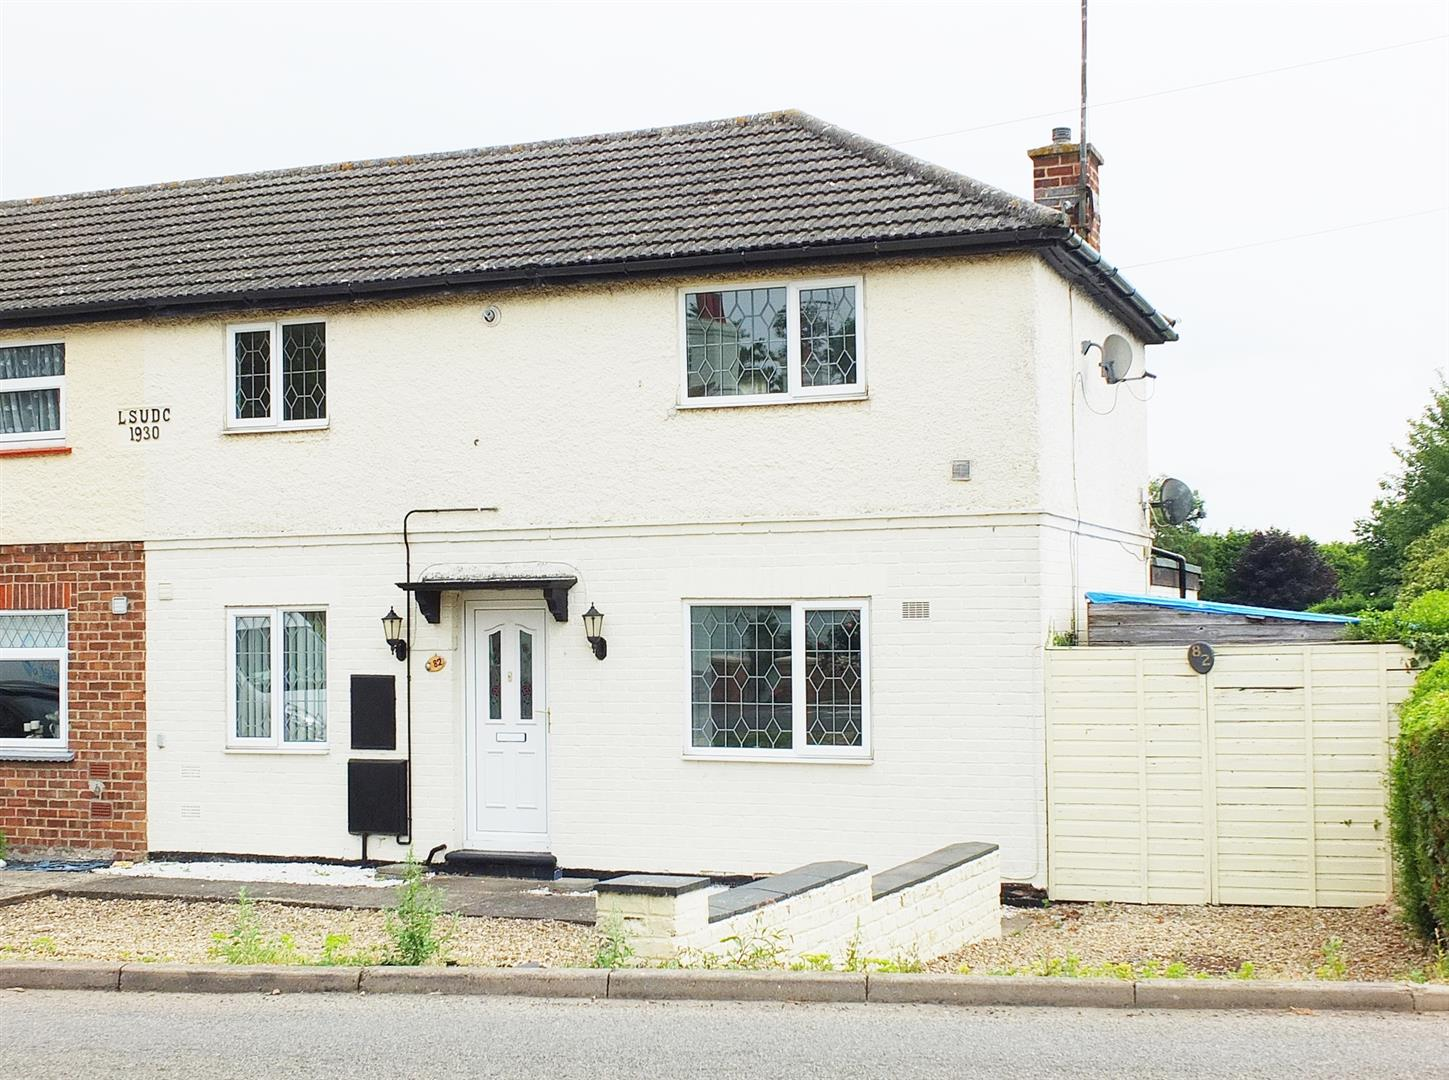 3 bed house for sale in Roman Bank, Long Sutton Spalding - Property Image 1